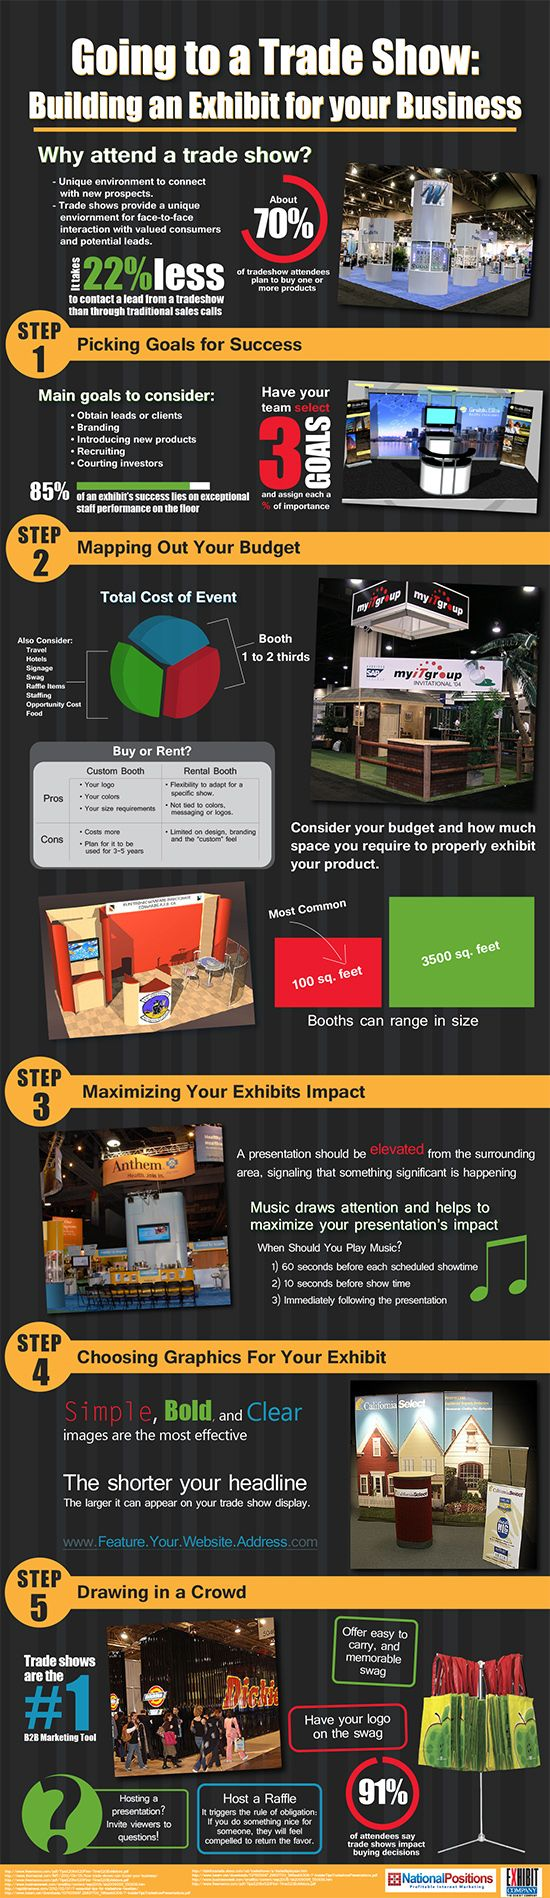 Going to a Trade Show? Here are some basic steps to consider. #infographic